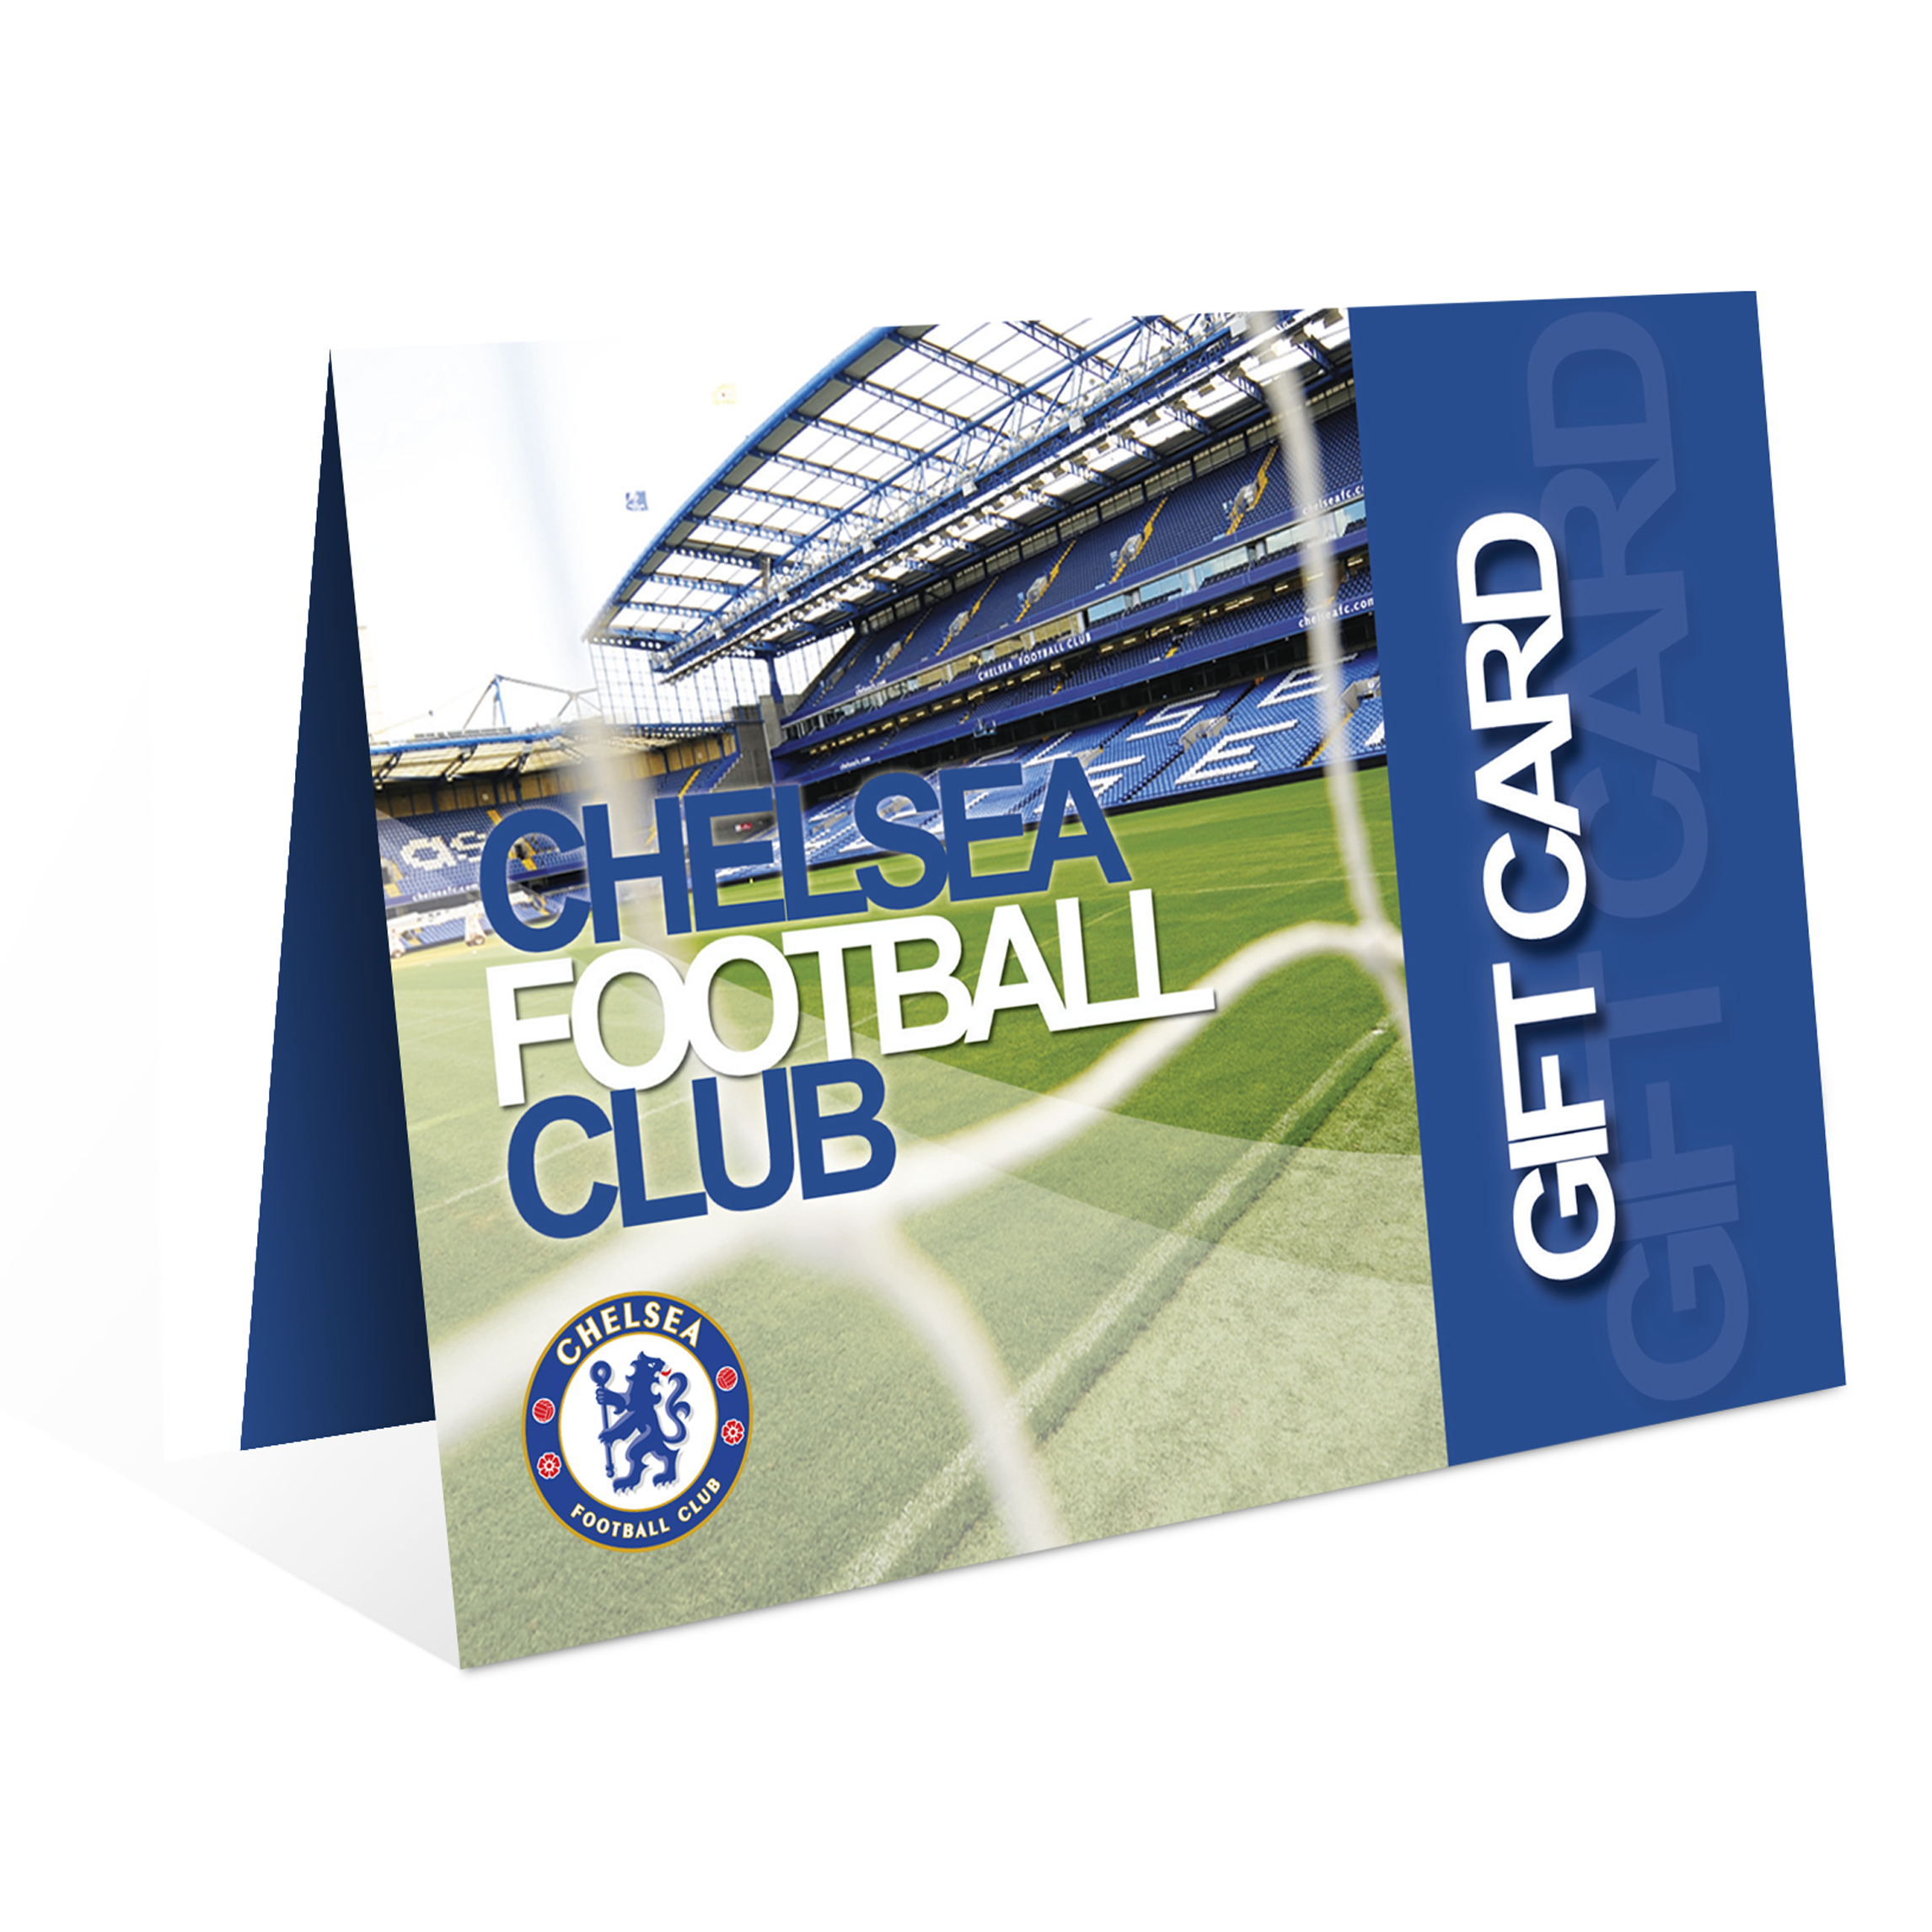 Chelsea Football Club Gift Card - Pitch - Value 25